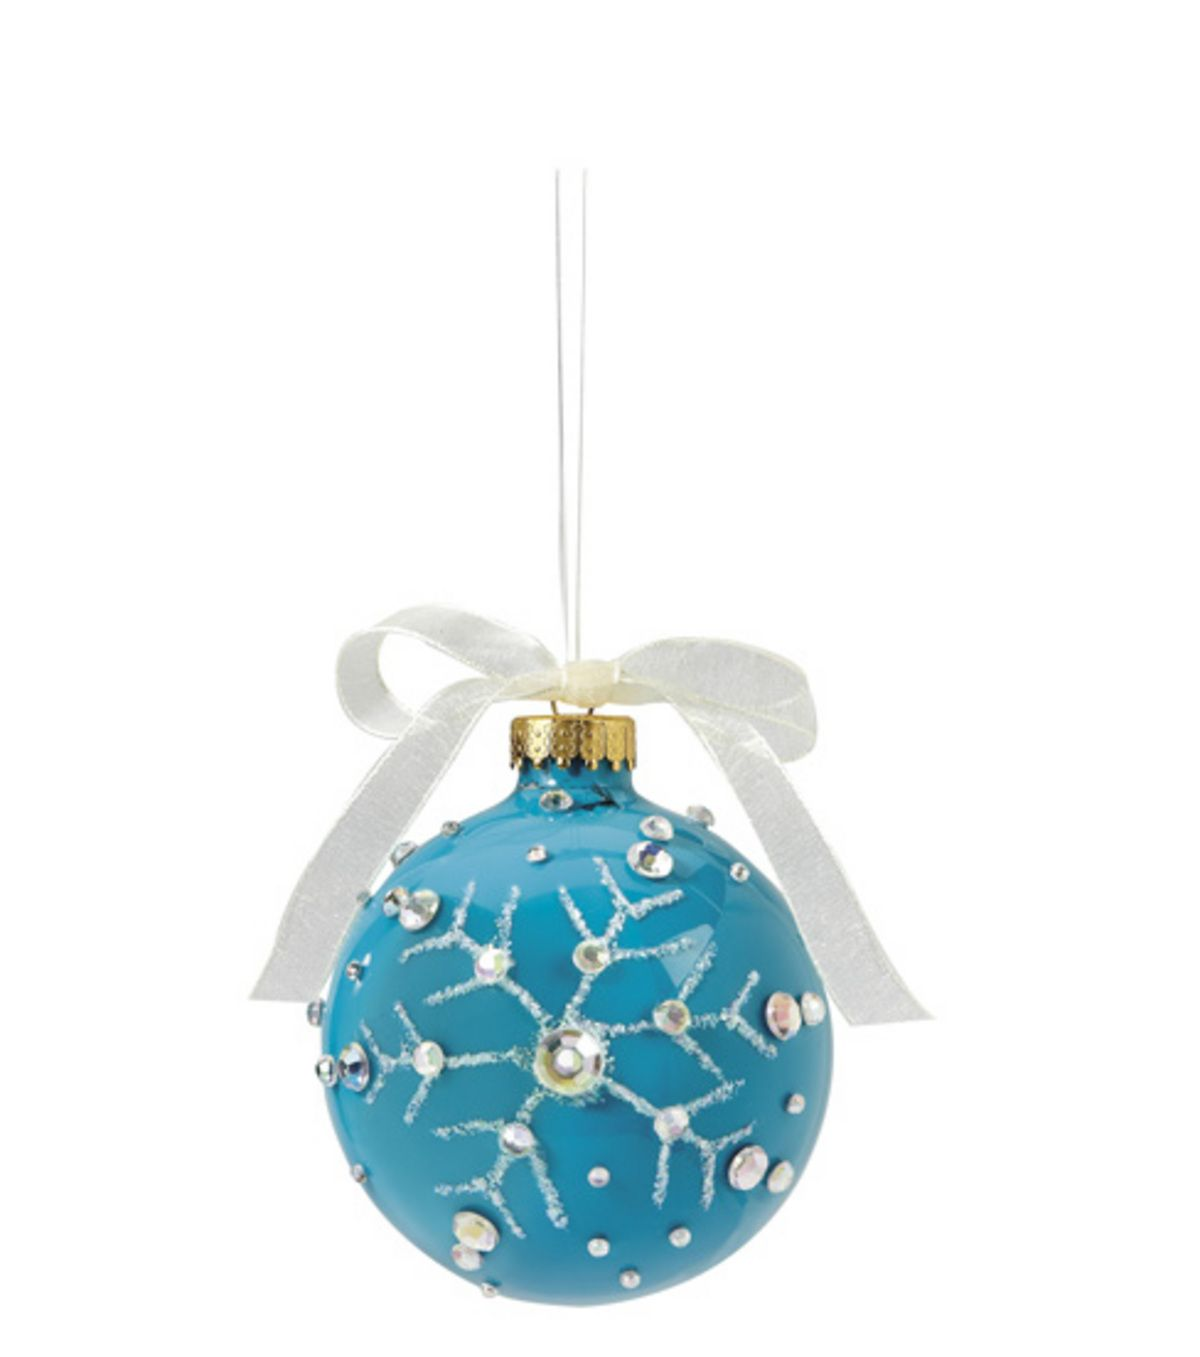 Snowflake Glass Ornament With Rhinestones At Joann Com Christmas Ornaments Diy Christmas Ornaments Christmas Crafts